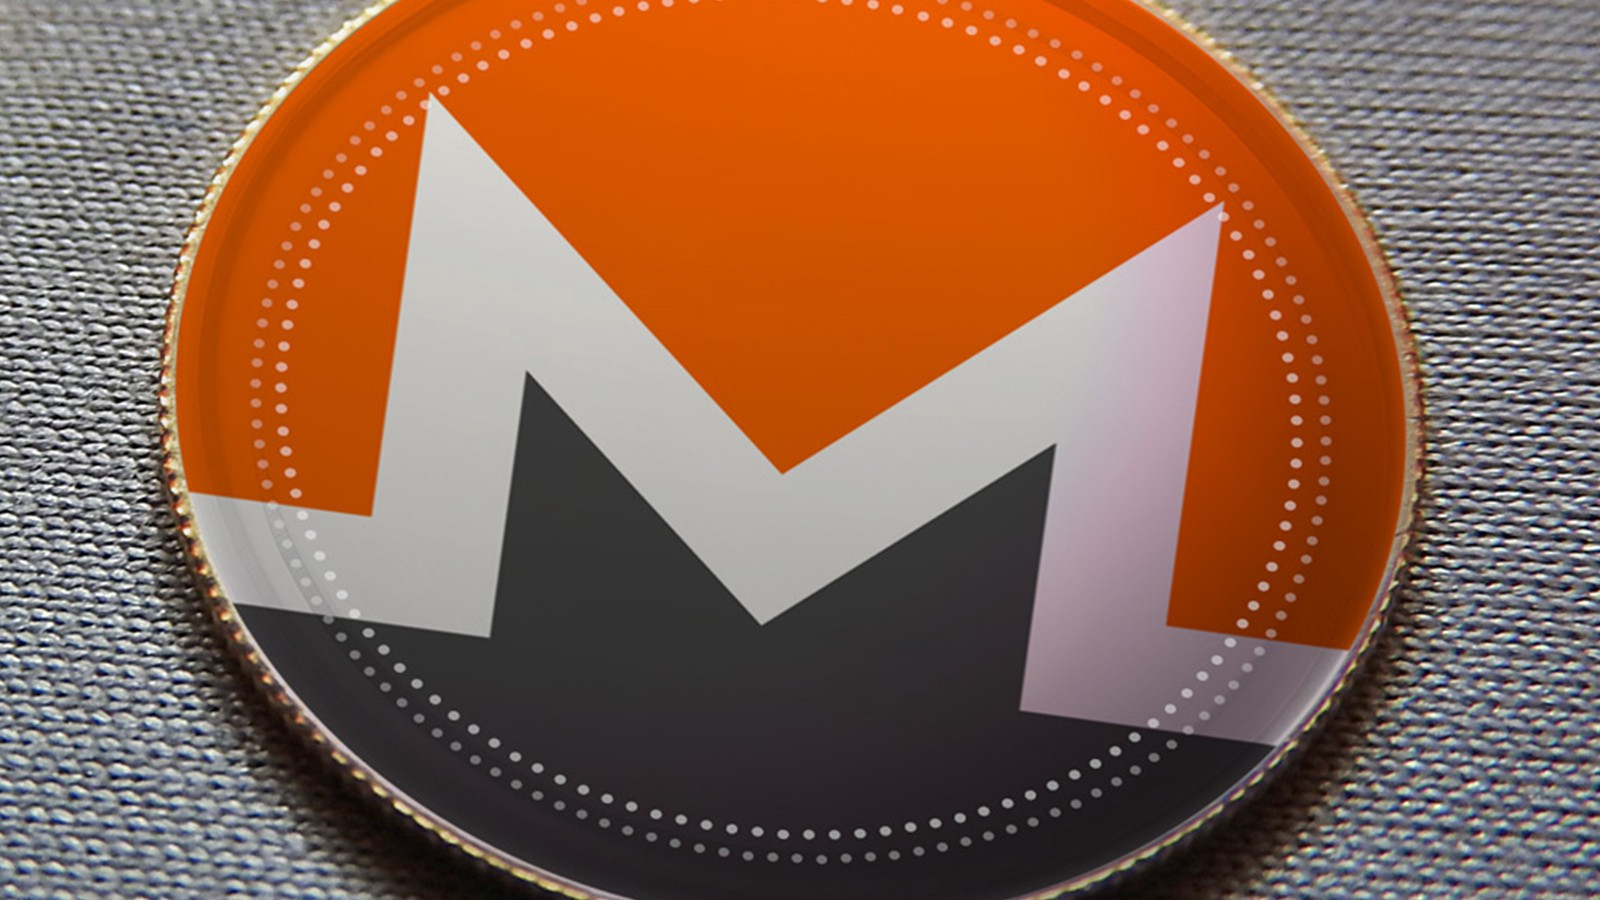 Monero (XMR), Ethereum (ETH), And Other Cryptos Stolen By Hacked MEGA Extension For Google Chrome